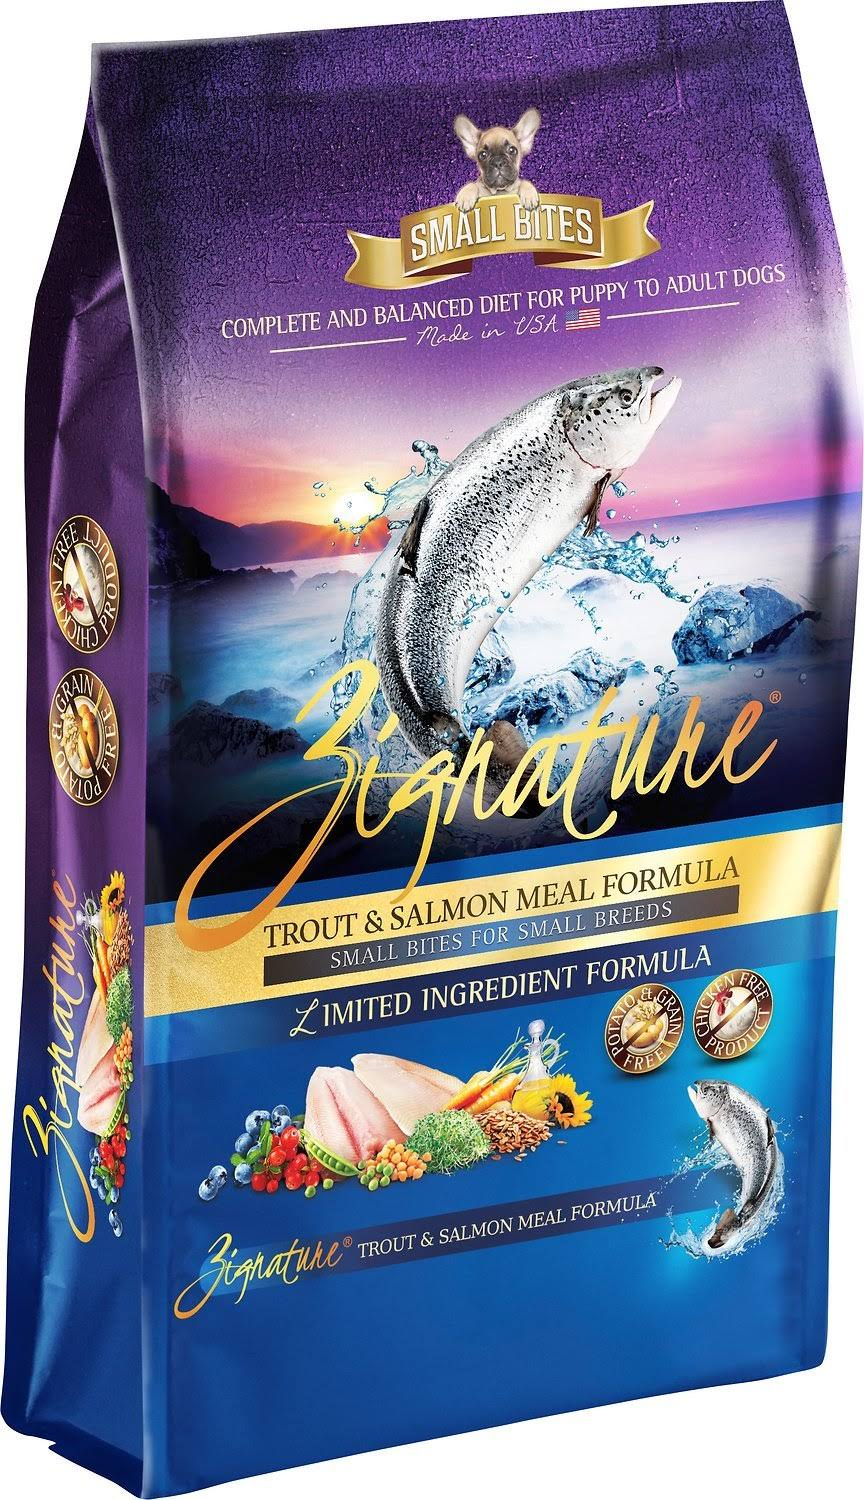 Zignature Small Bites Grain Free Trout & Salmon Formula Dry Dog Food - 13.5-lb